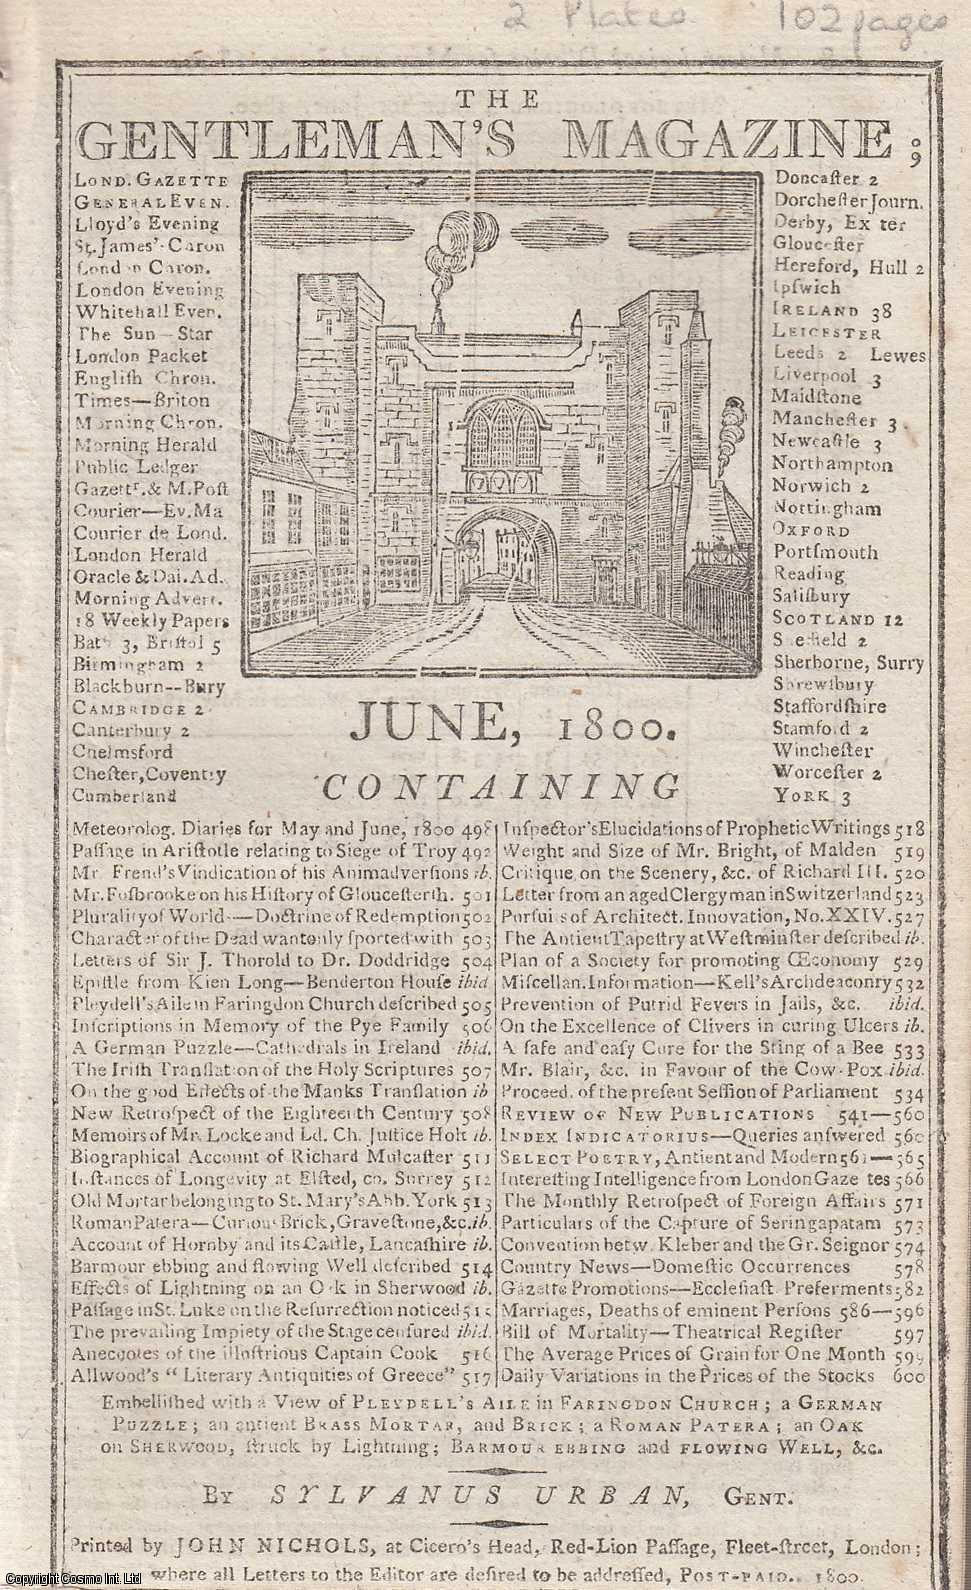 The Gentleman's Magazine for June 1800. FEATURING Two Plates; Pleydell's Aile in Farringdon Church & Ancient Brass Mortar, etc., Urban, Sylvanus.